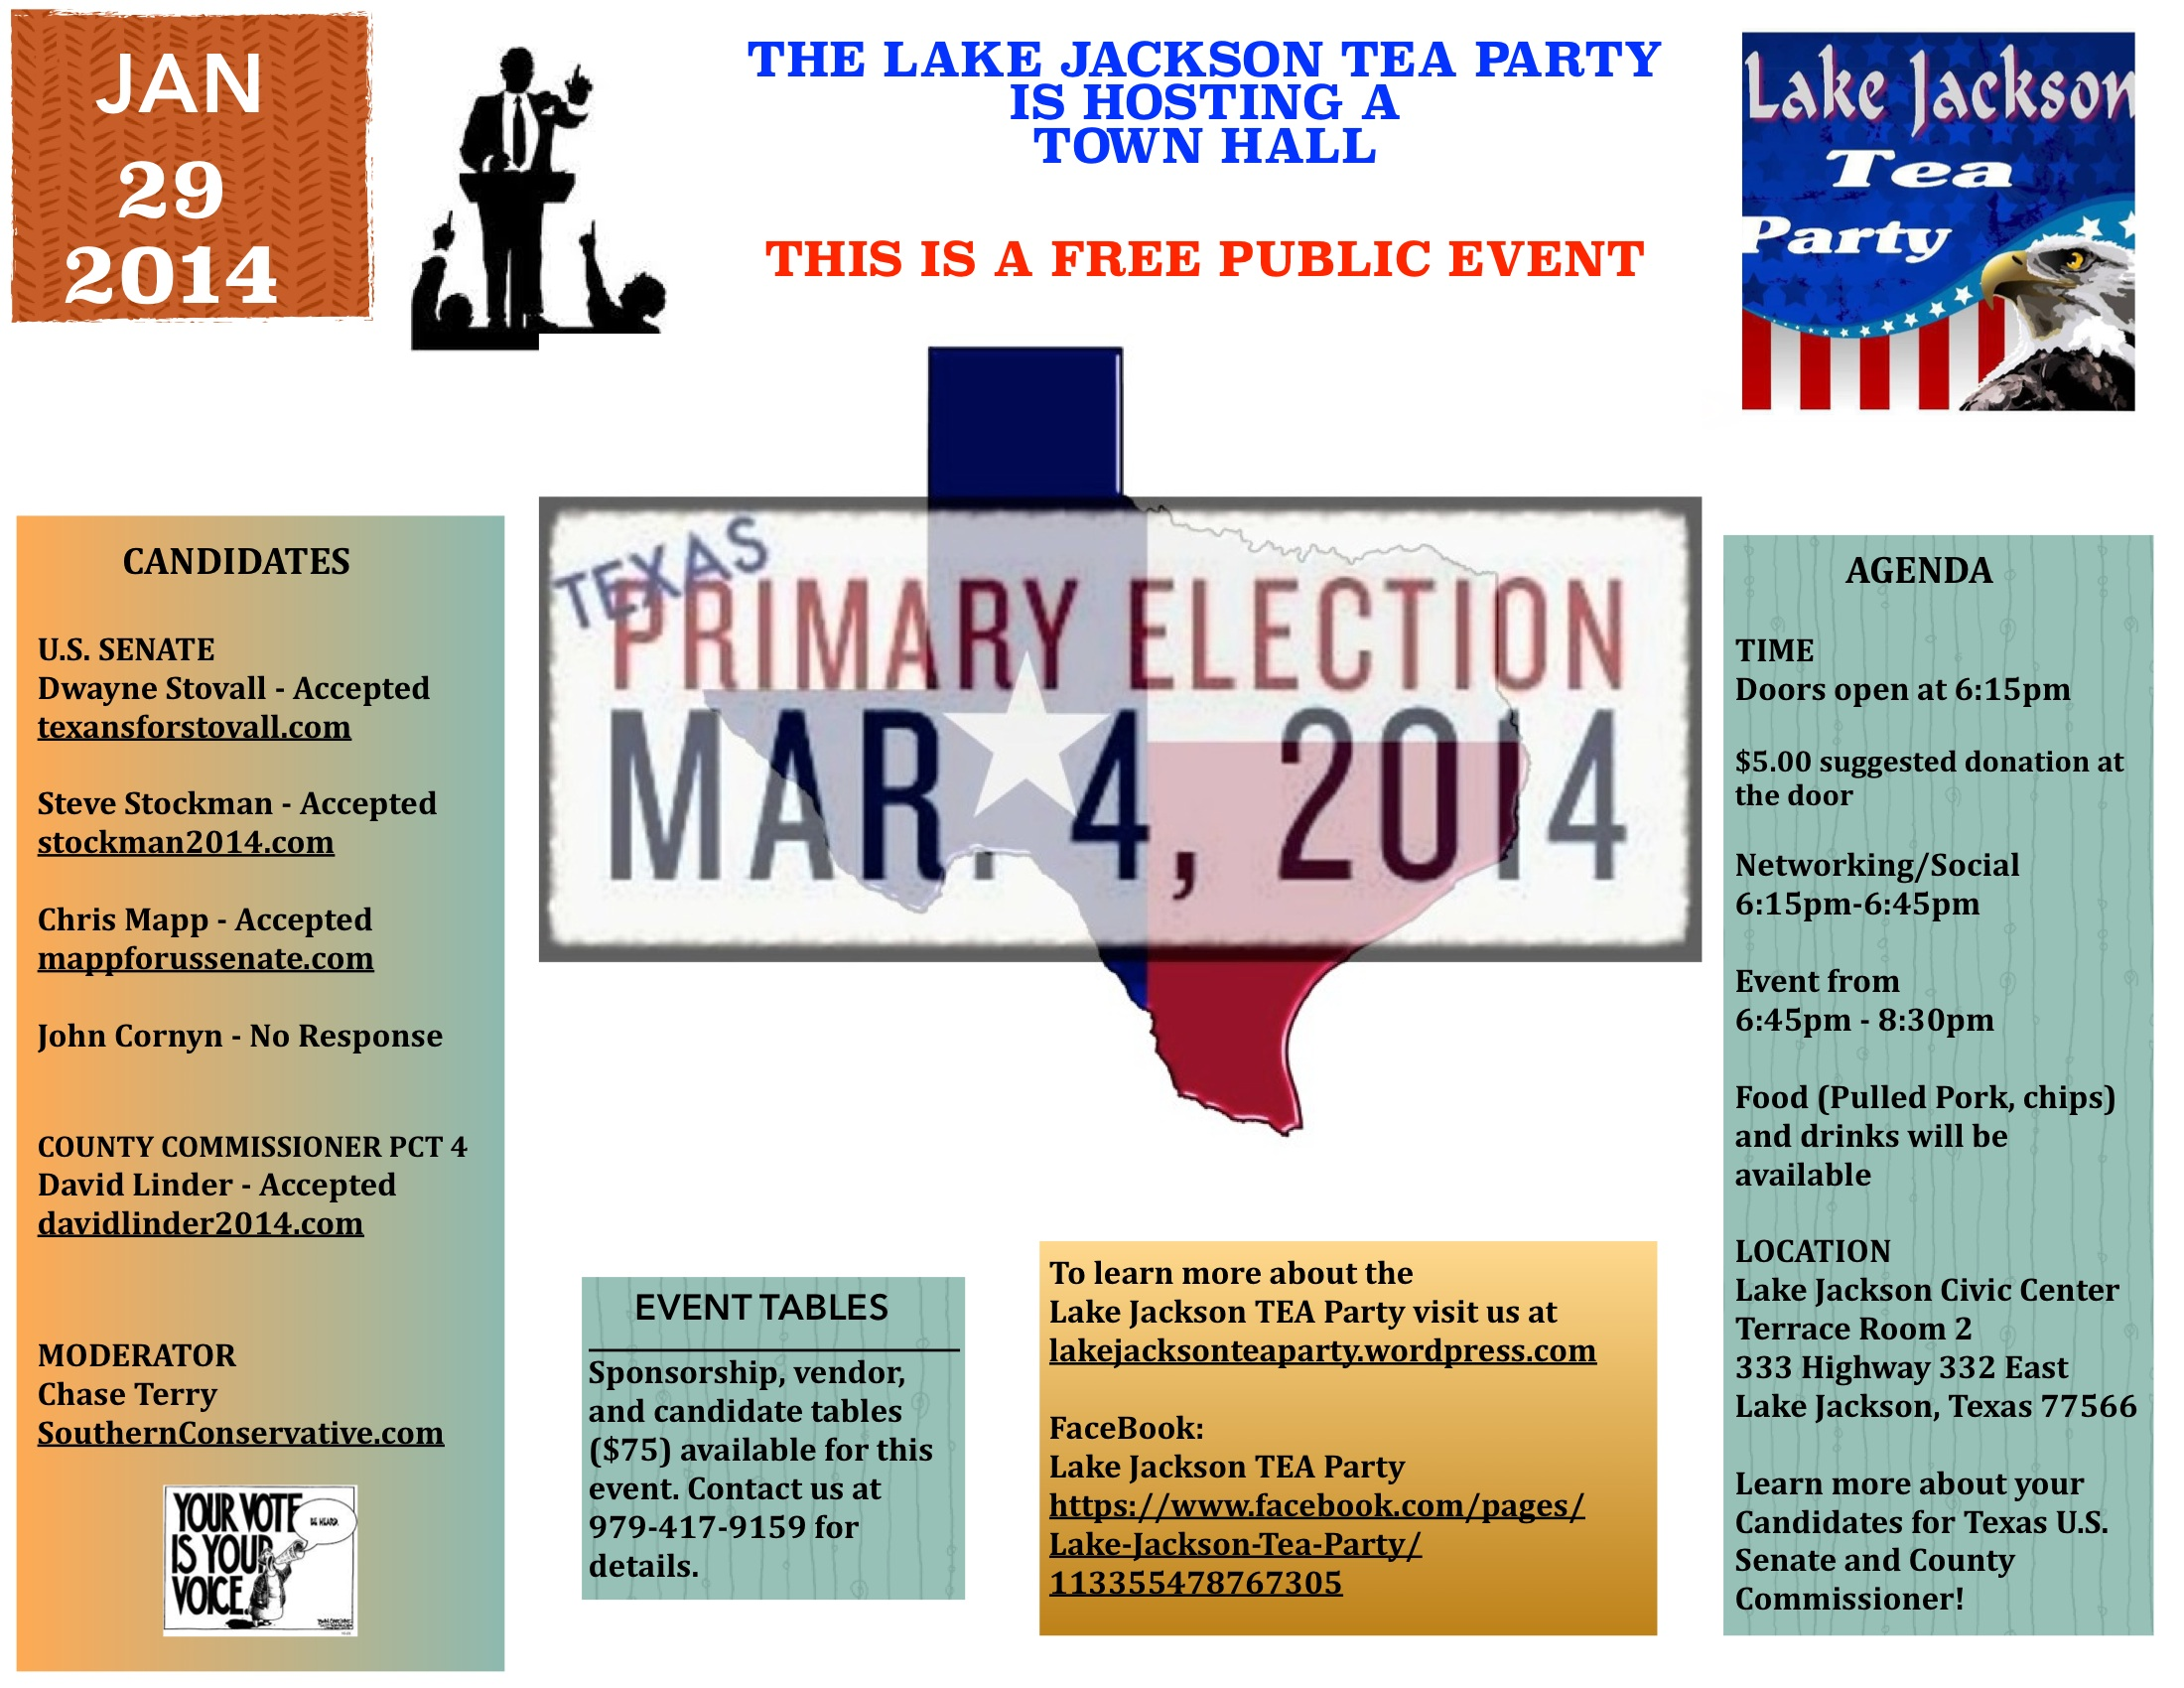 Jan 29, 2014 with Texas U.S. Senate, County Commissioner candidates ...